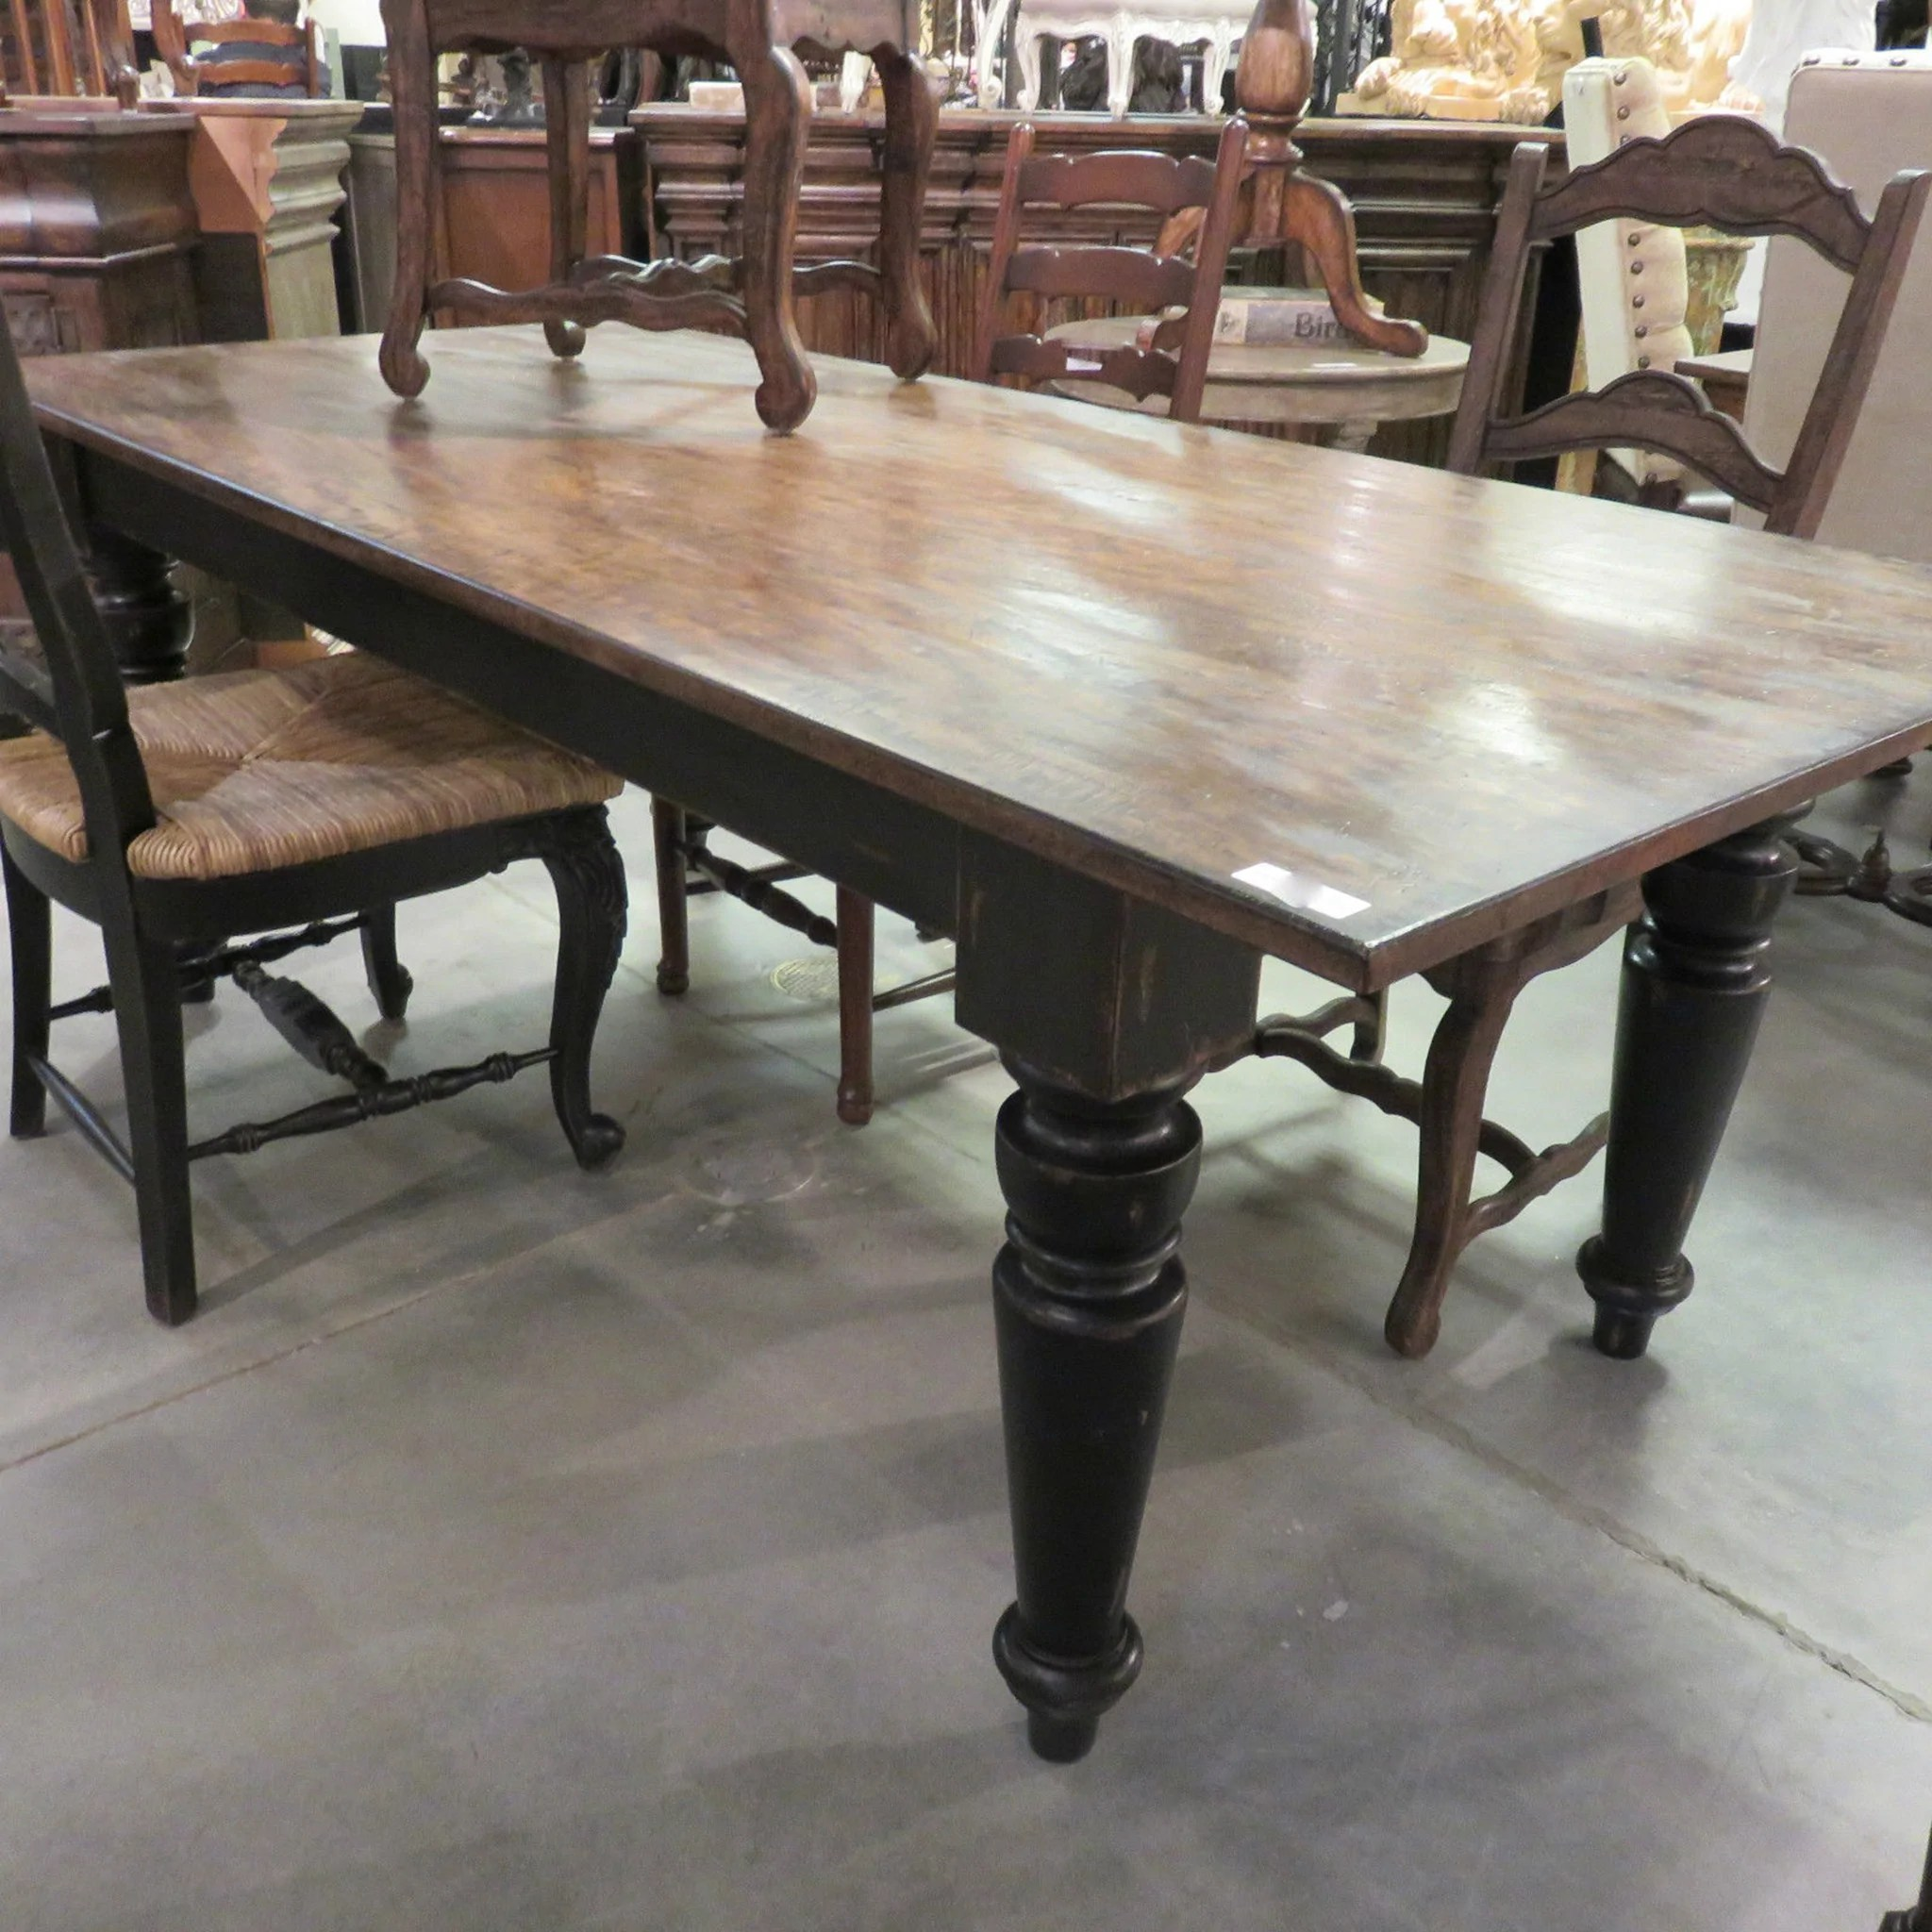 Dining Room Furniture Rustic Rustic Farmhouse Dining Table 84